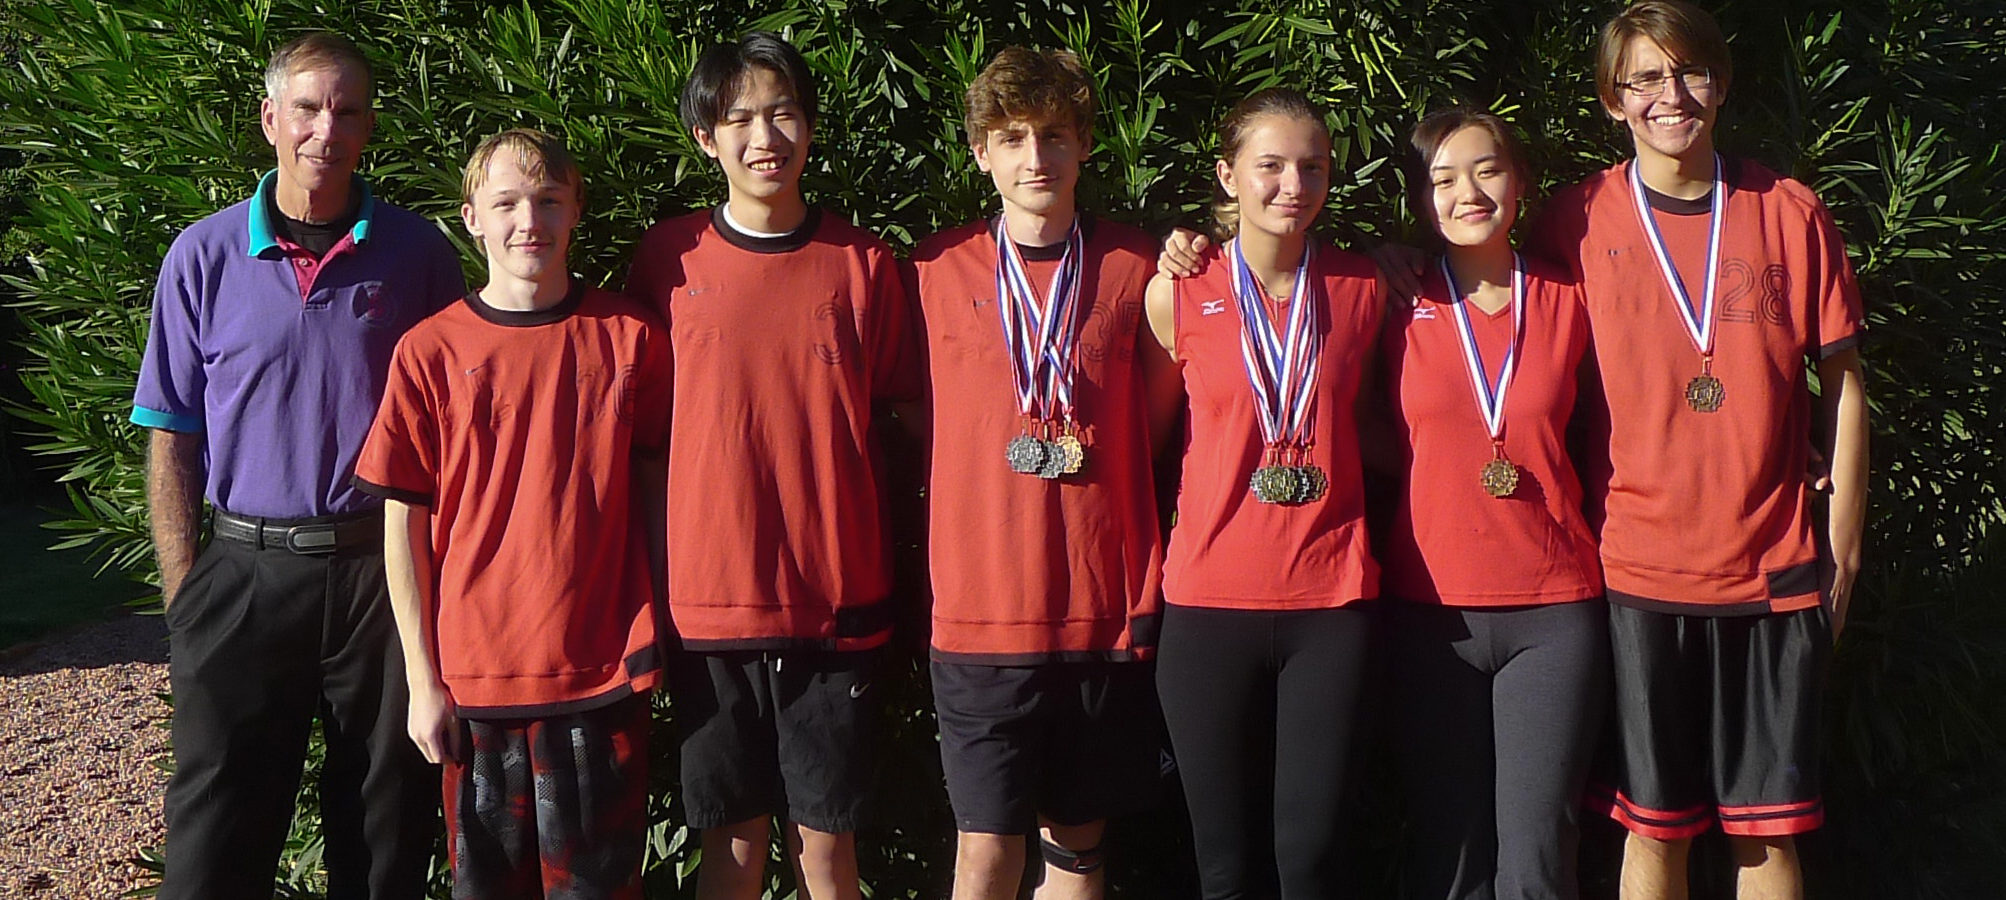 Coach Huber, Kevin Bermingham, Maxwell Zhang, Premton Canamusa, Toska Ymerhalili, Stephanie Feng, Ramiro Flores Acosta